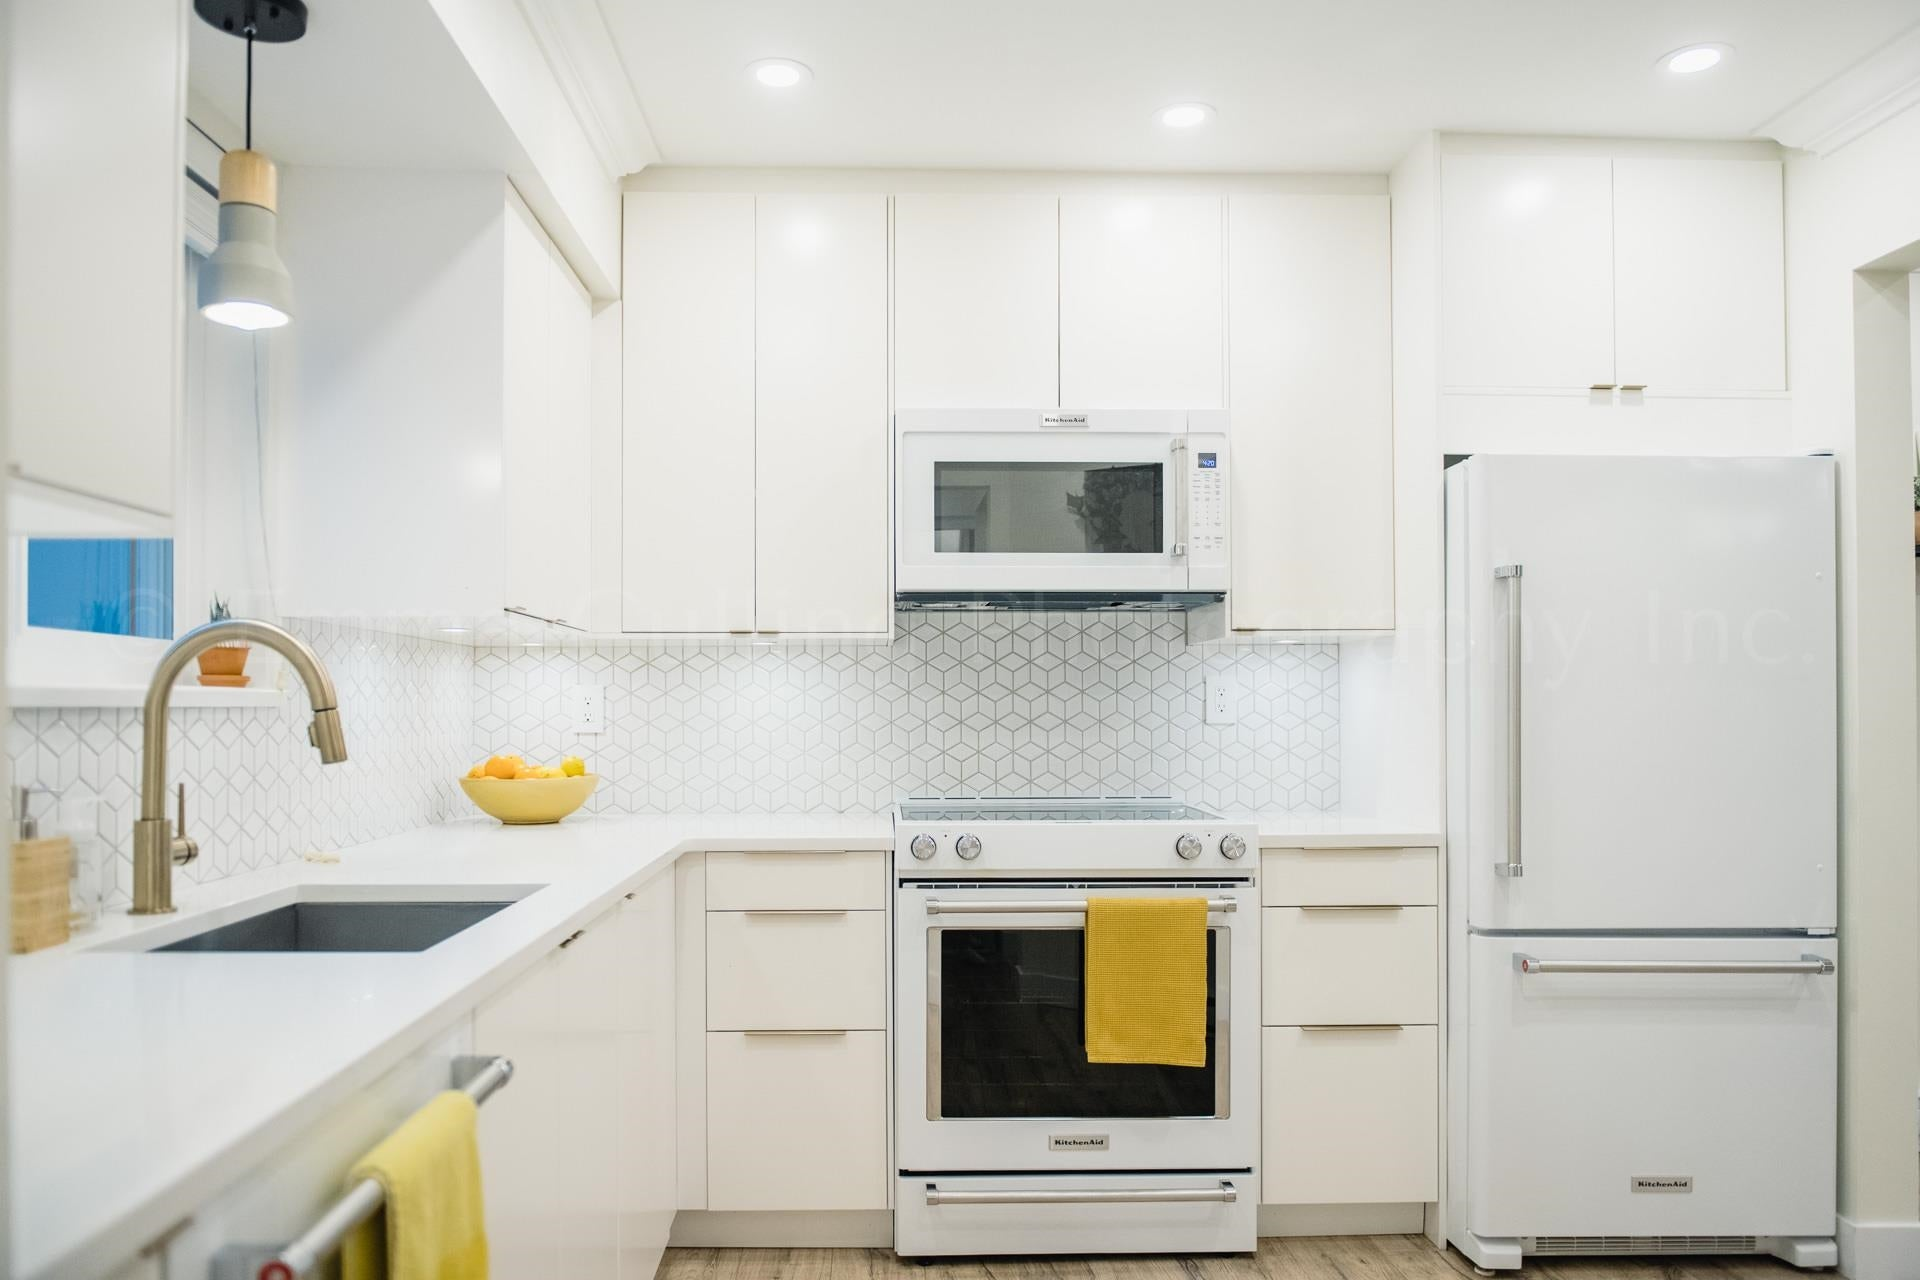 11 7400 MINORU BOULEVARD - Brighouse South Townhouse for sale, 3 Bedrooms (R2627144)